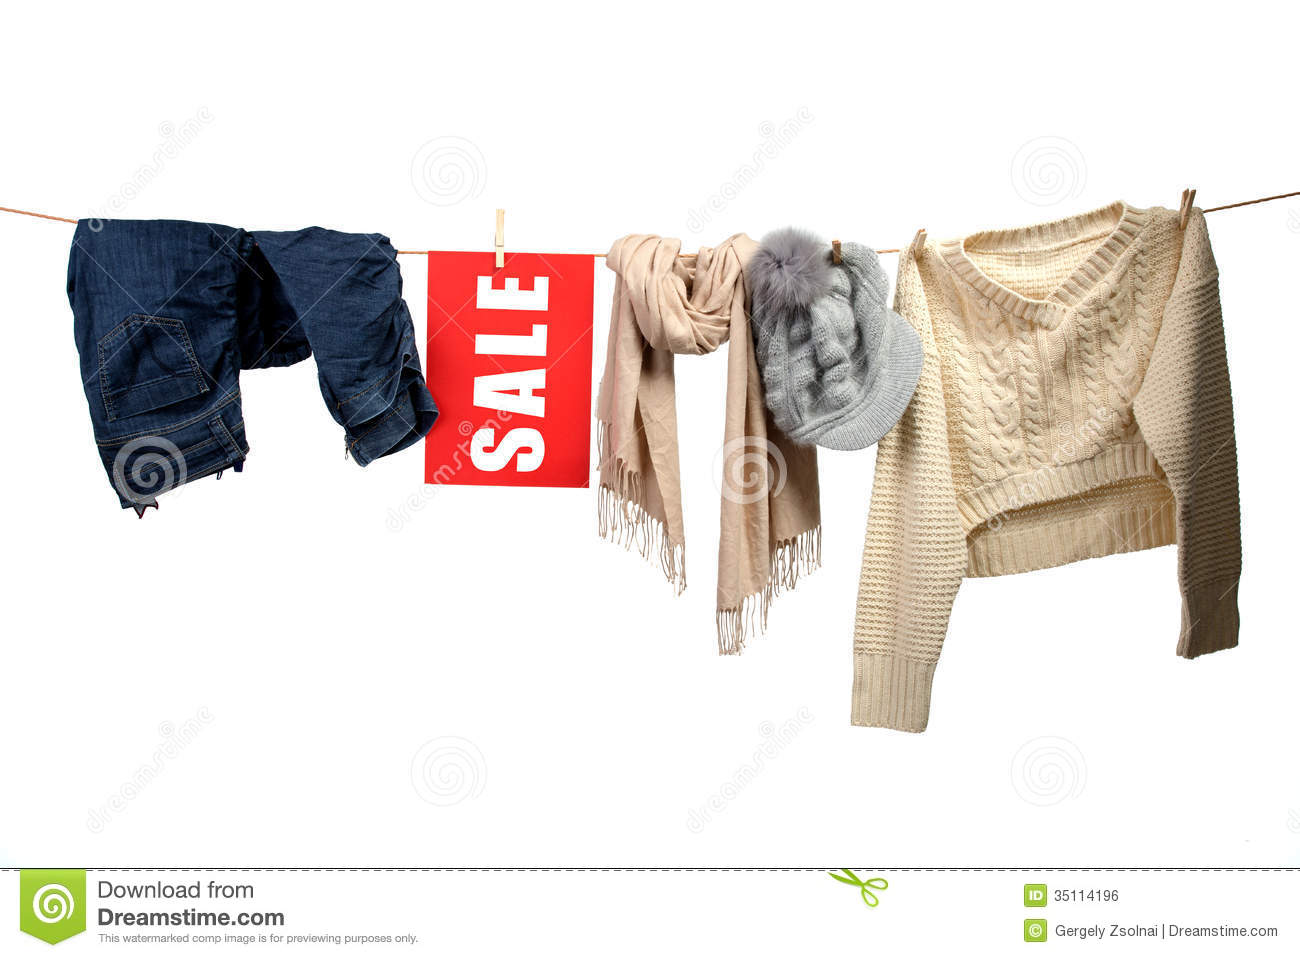 e5330984ece9a Women's Fashion Sale On The Clothesline Stock Photo - Image of ...